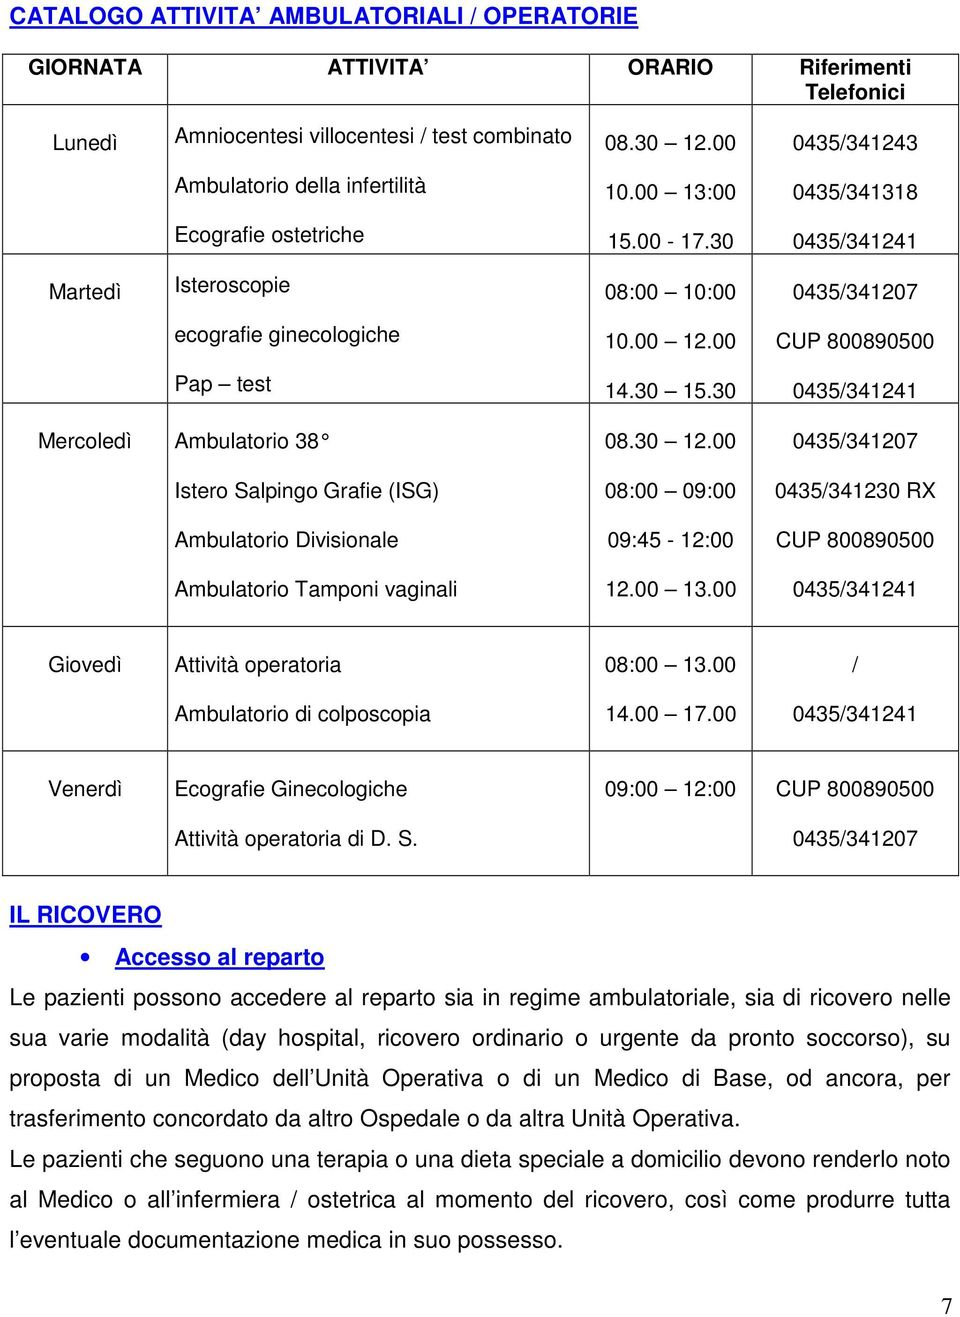 30 0435/341241 Mercoledì Ambulatorio 38 Istero Salpingo Grafie (ISG) Ambulatorio Divisionale Ambulatorio Tamponi vaginali 08.30 12.00 08:00 09:00 09:45-12:00 12.00 13.